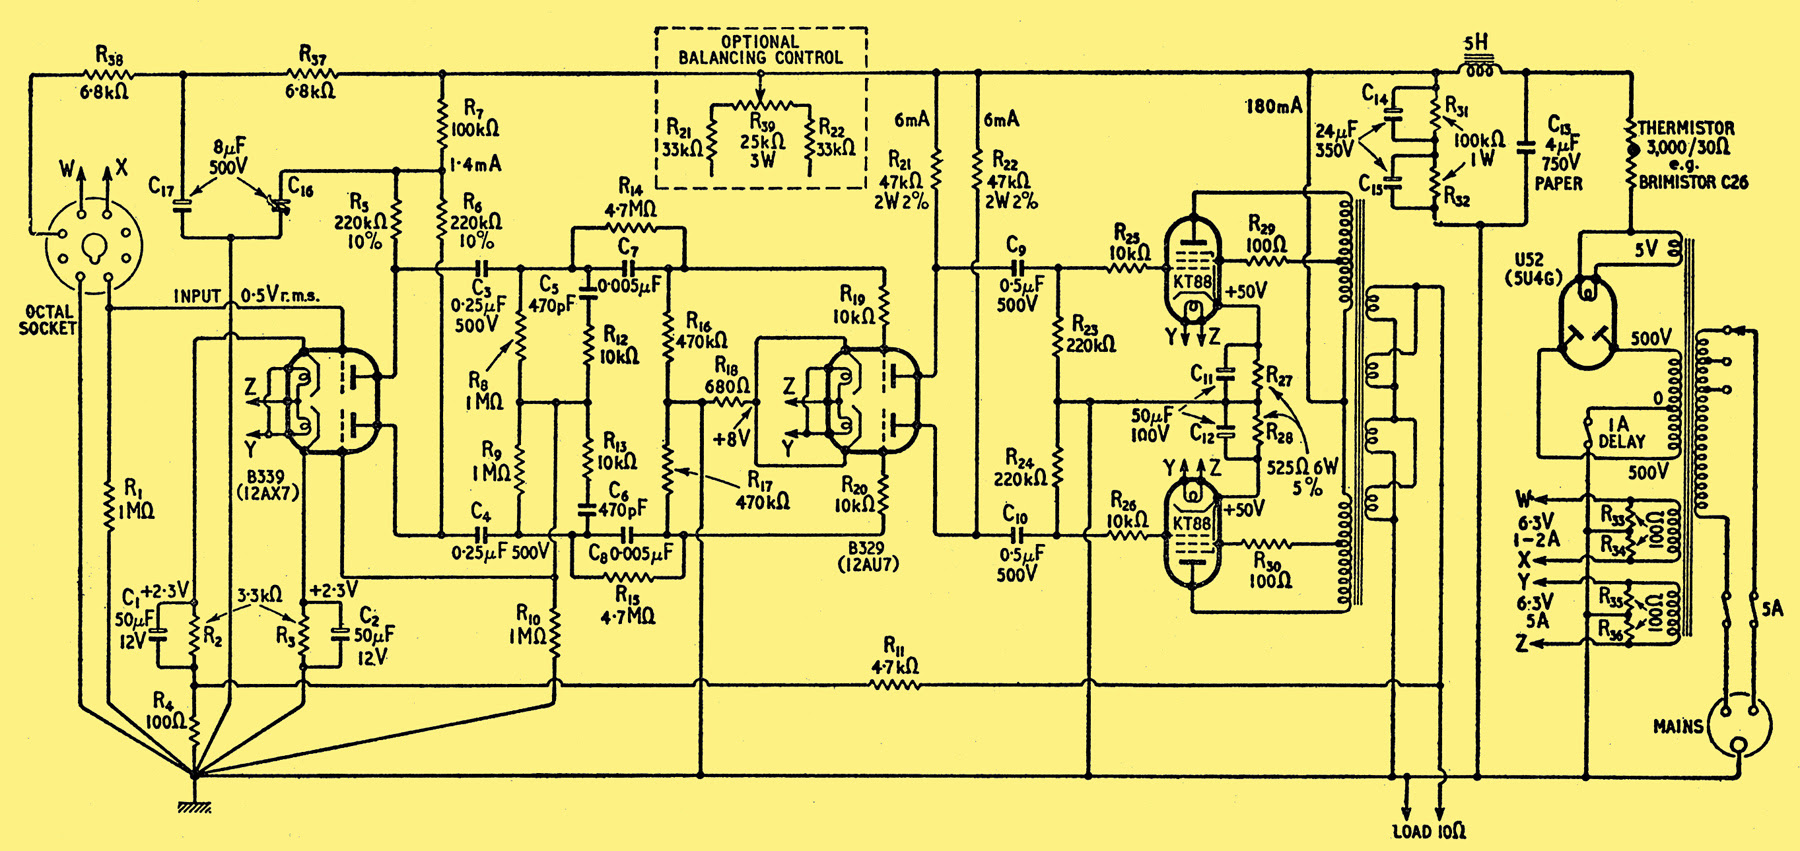 Npa 4000 Power Amp Circuit - Plete Circuit Diagram Of The Main Ampilifier  Resistors Are Rated